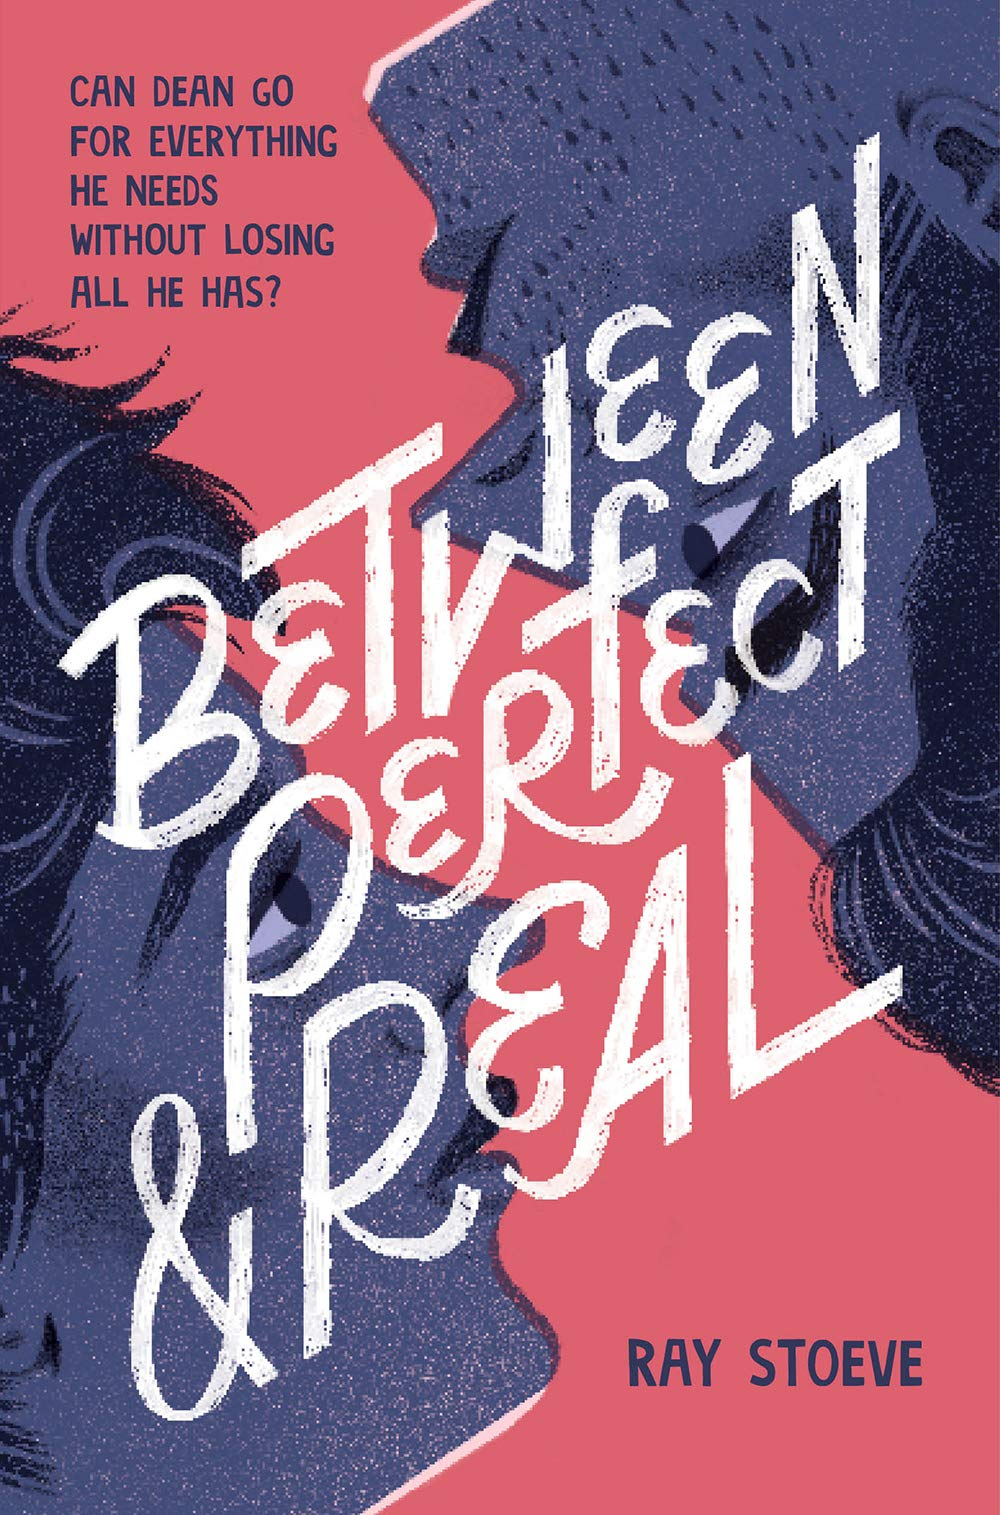 Amazon.com: Between Perfect and Real (9781419746017): Stoeve, Ray: Books